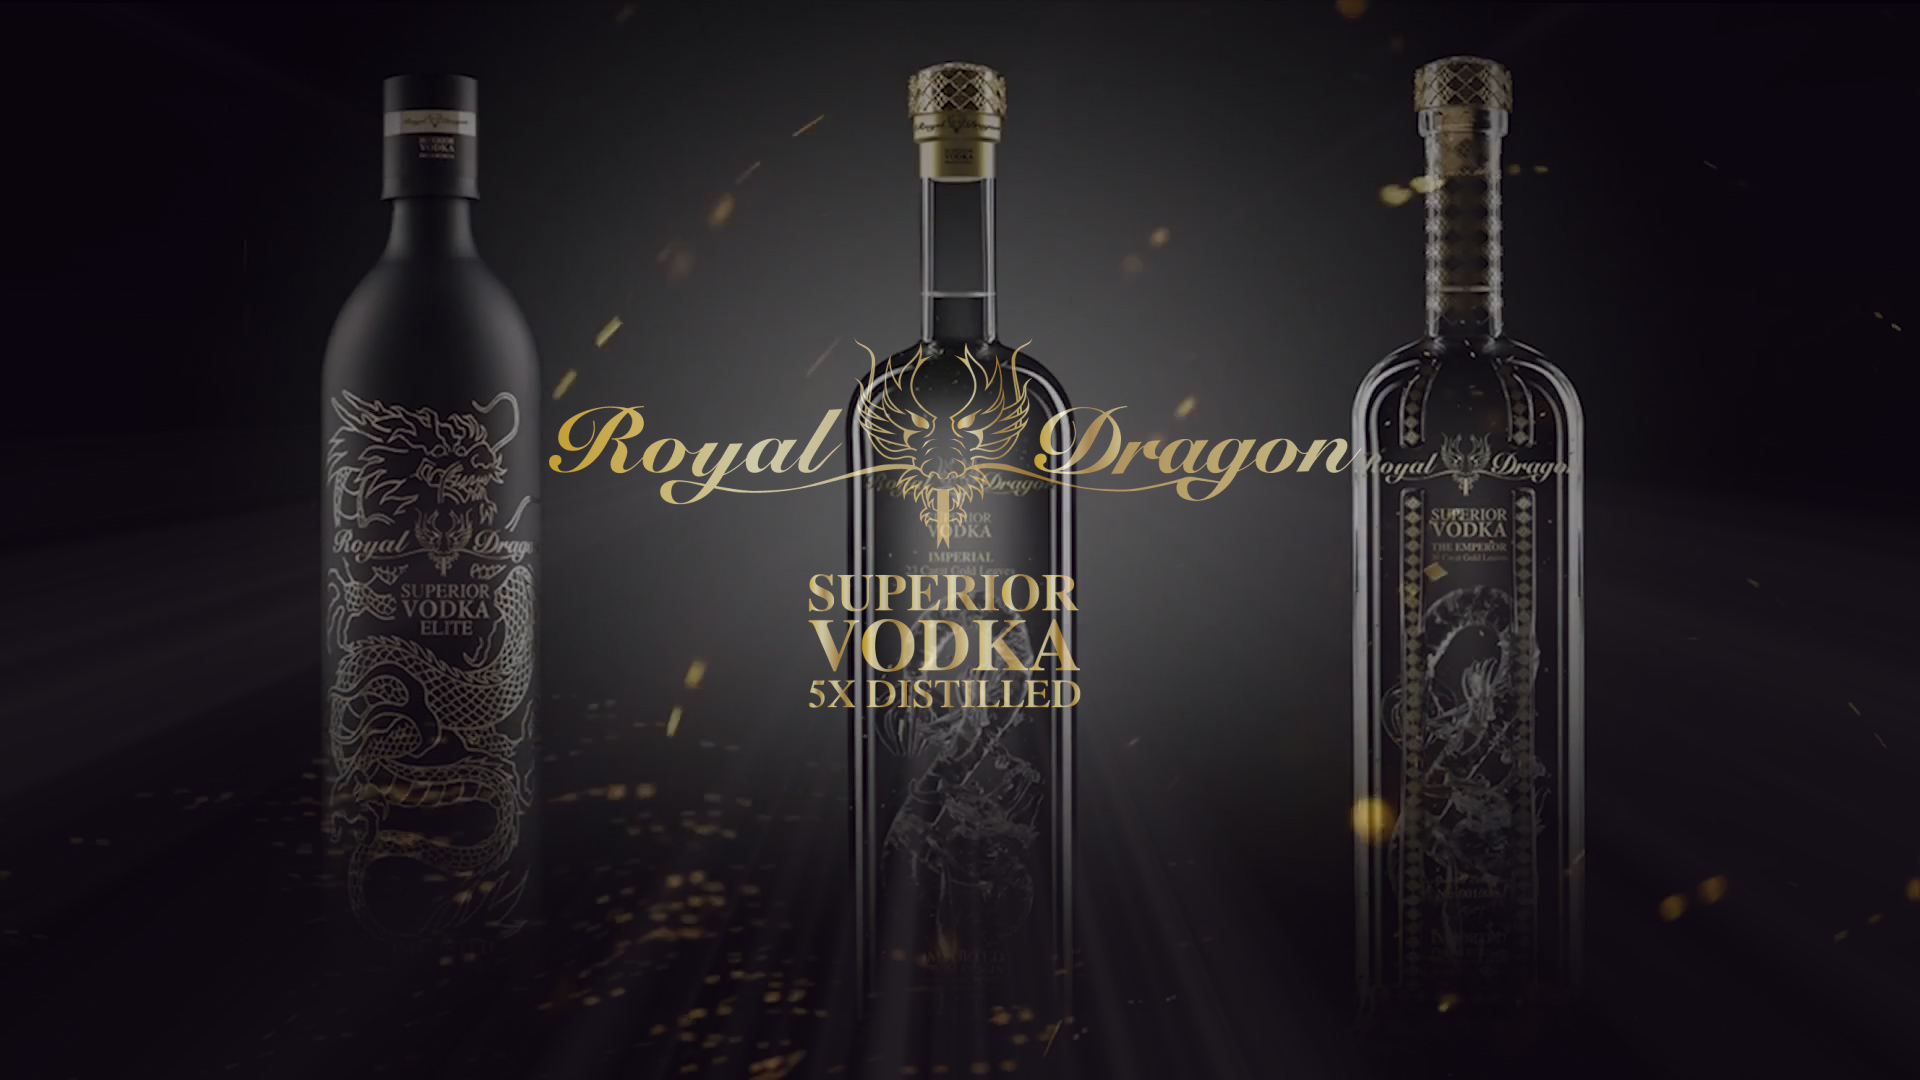 Royal Dragon Vodka TV advert